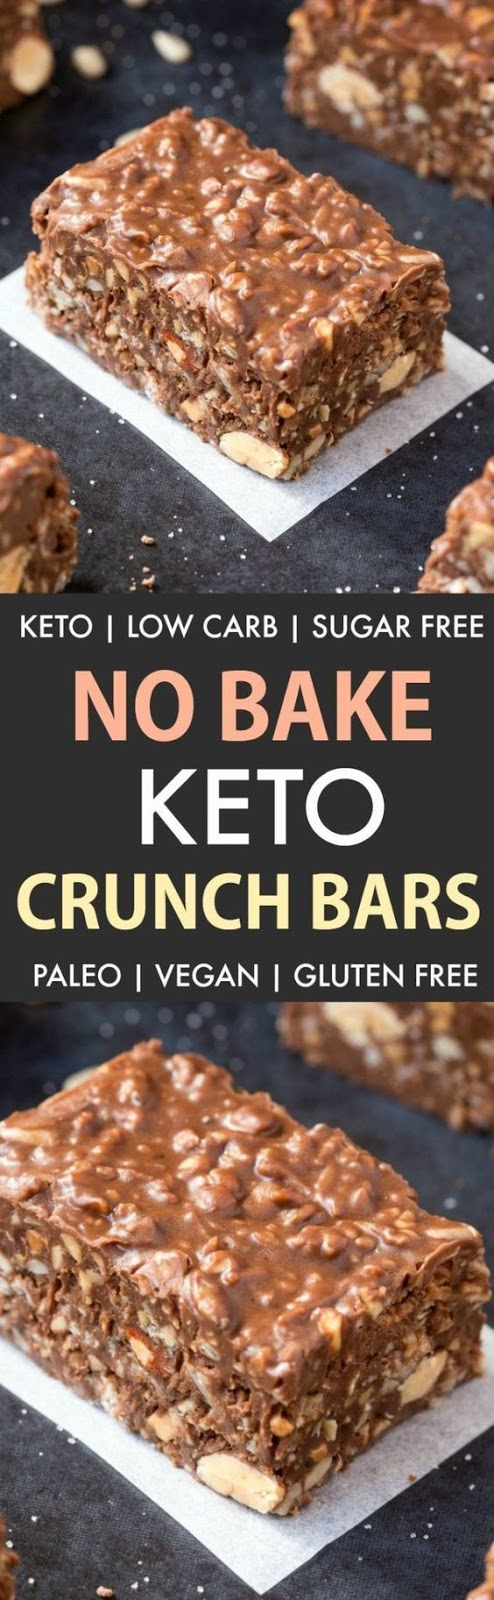 Homemade Keto Chocolate Crunch Bars Recipe